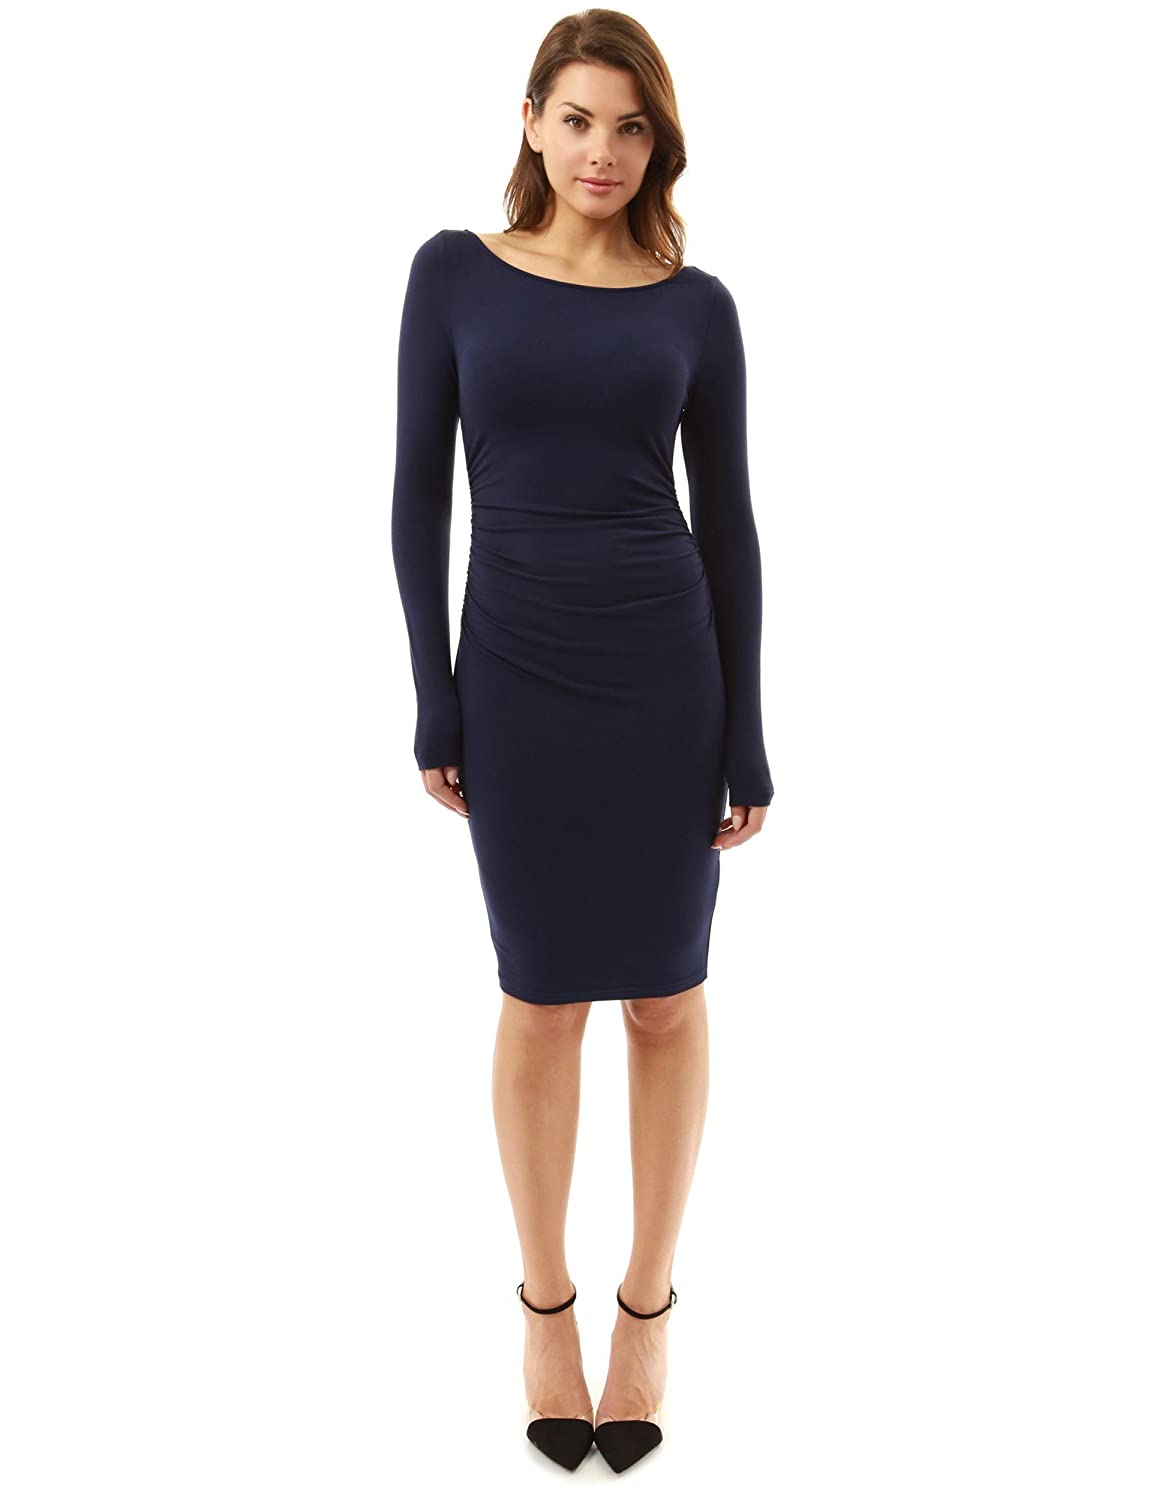 PattyBoutik Women's Boat Neck Long Sleeve Ruched Dress